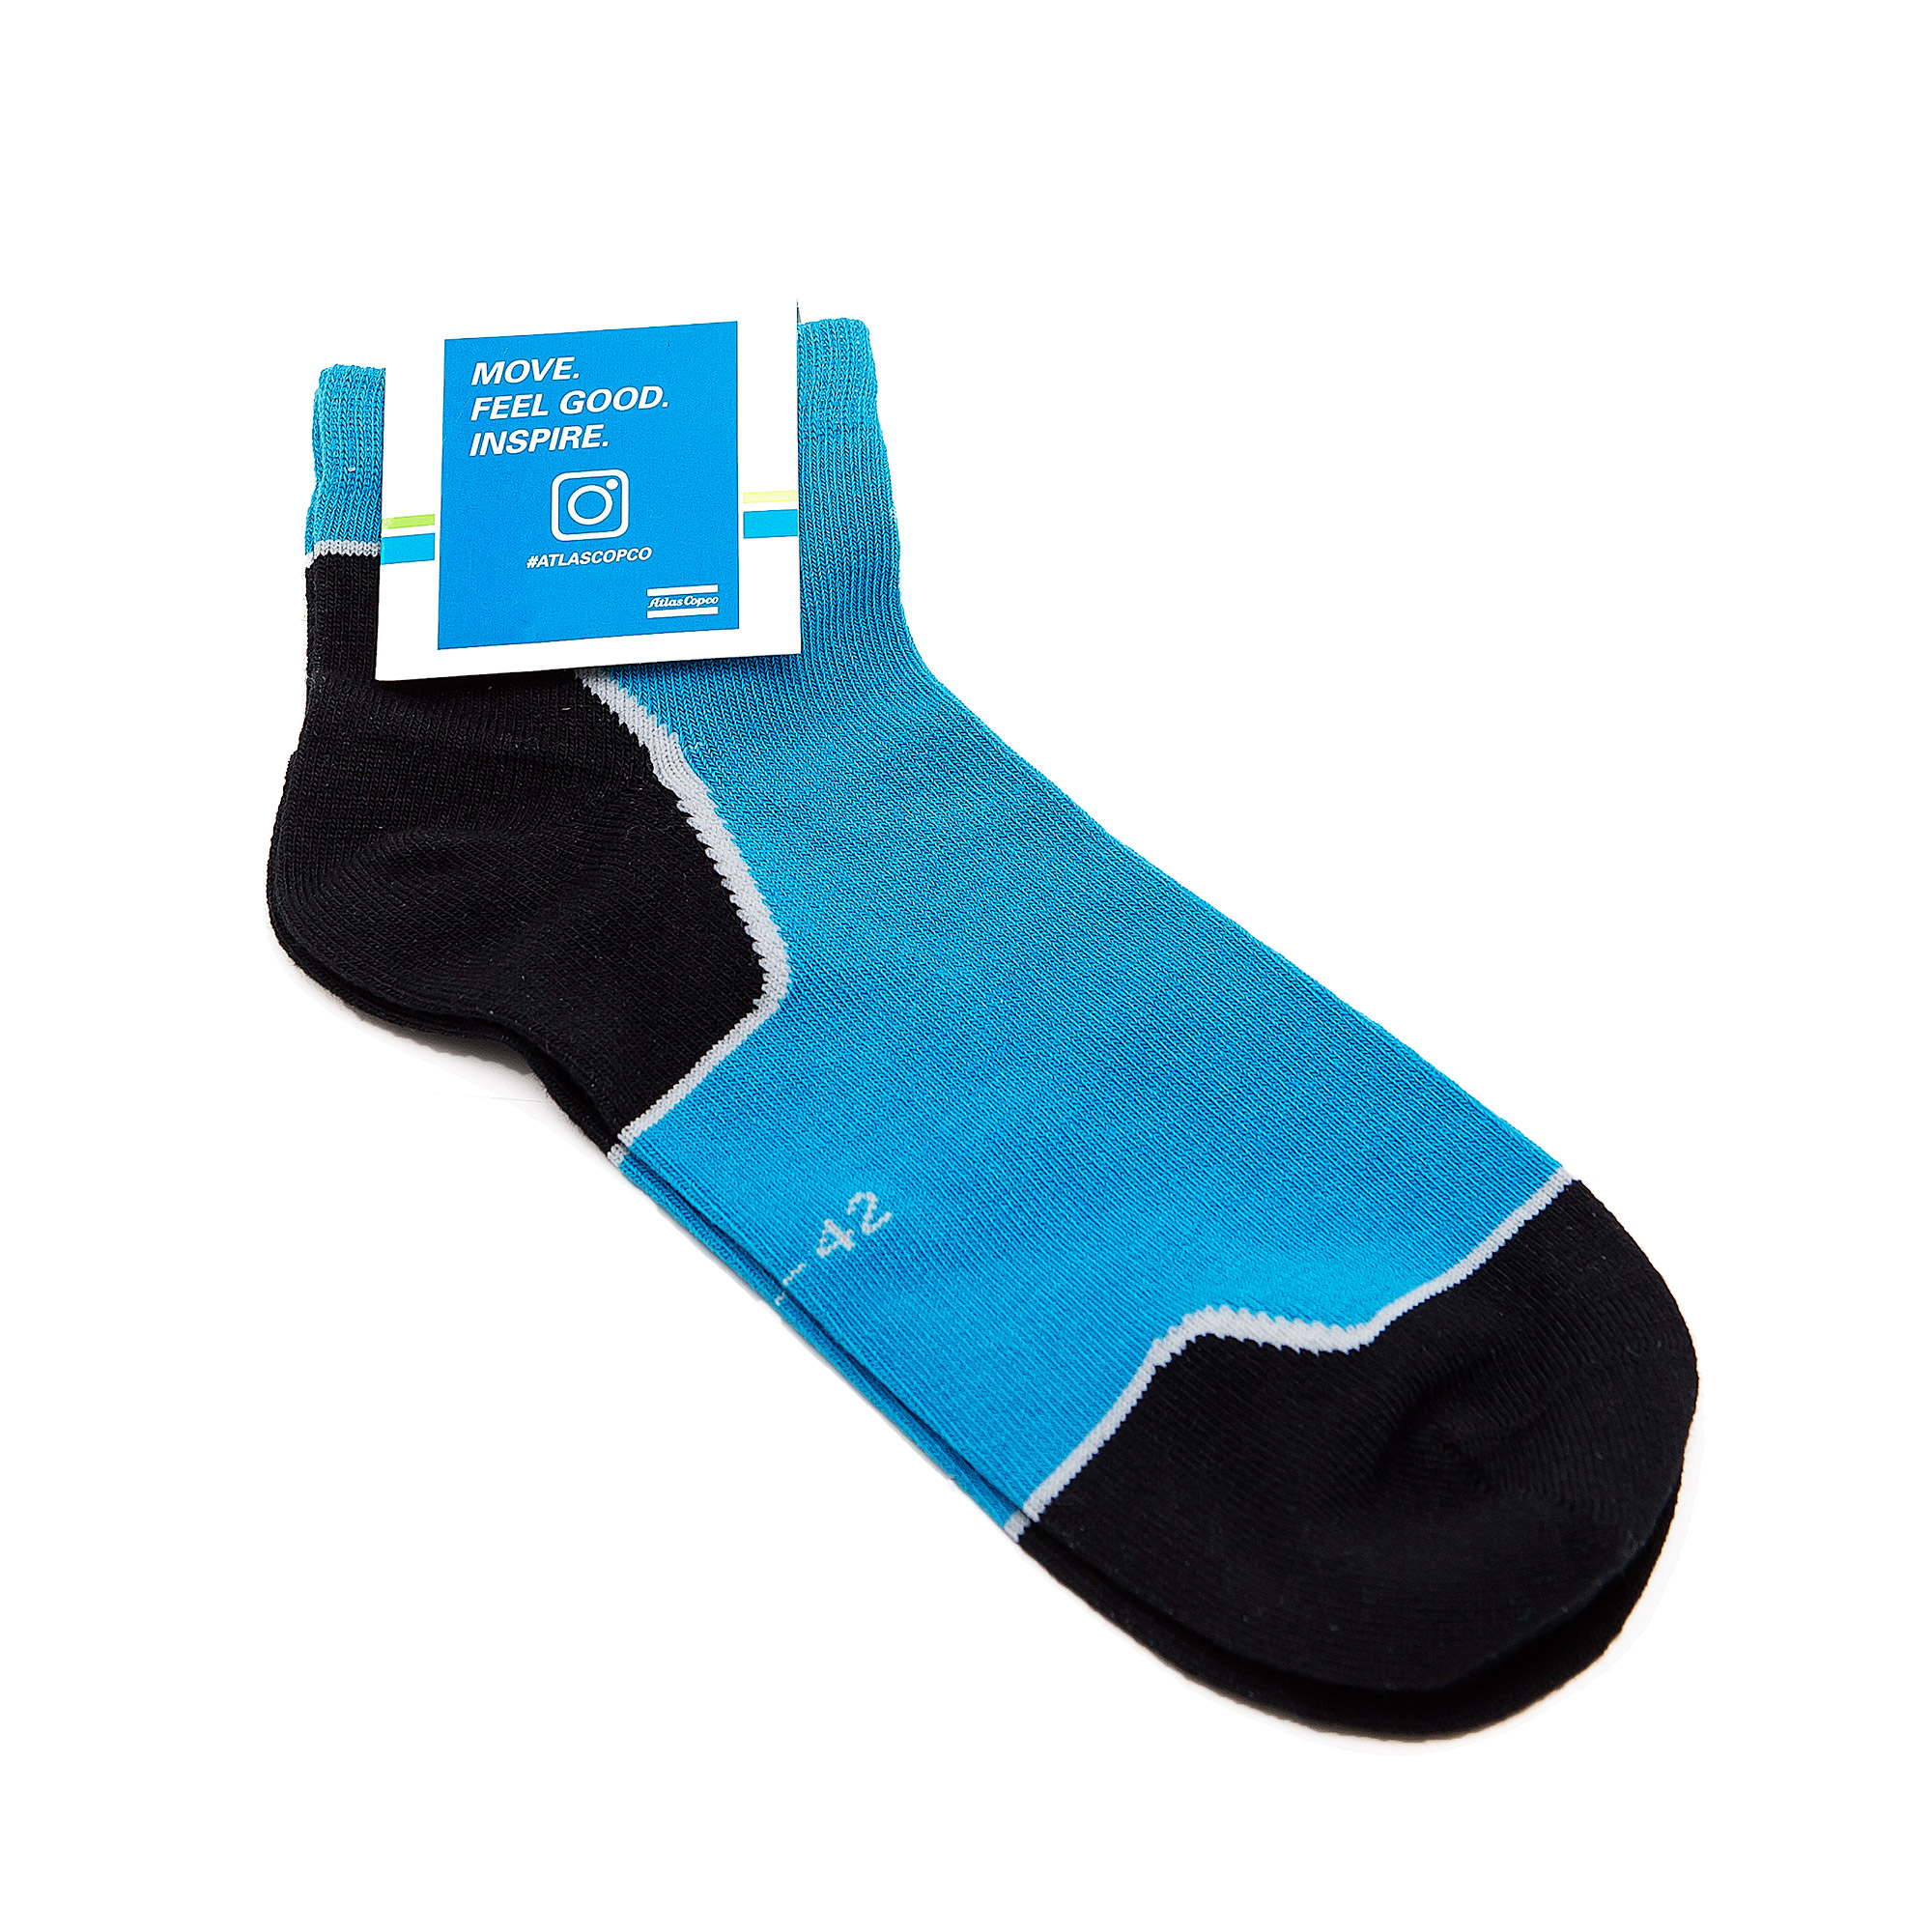 Lightweight athletic socks for best performance. These socks are designed for people who enjoy endurance activities. They lead moisture away (Cool Max) from the foot to prevent blistering and they are made to effectively protect your foot from sores and abrasion.